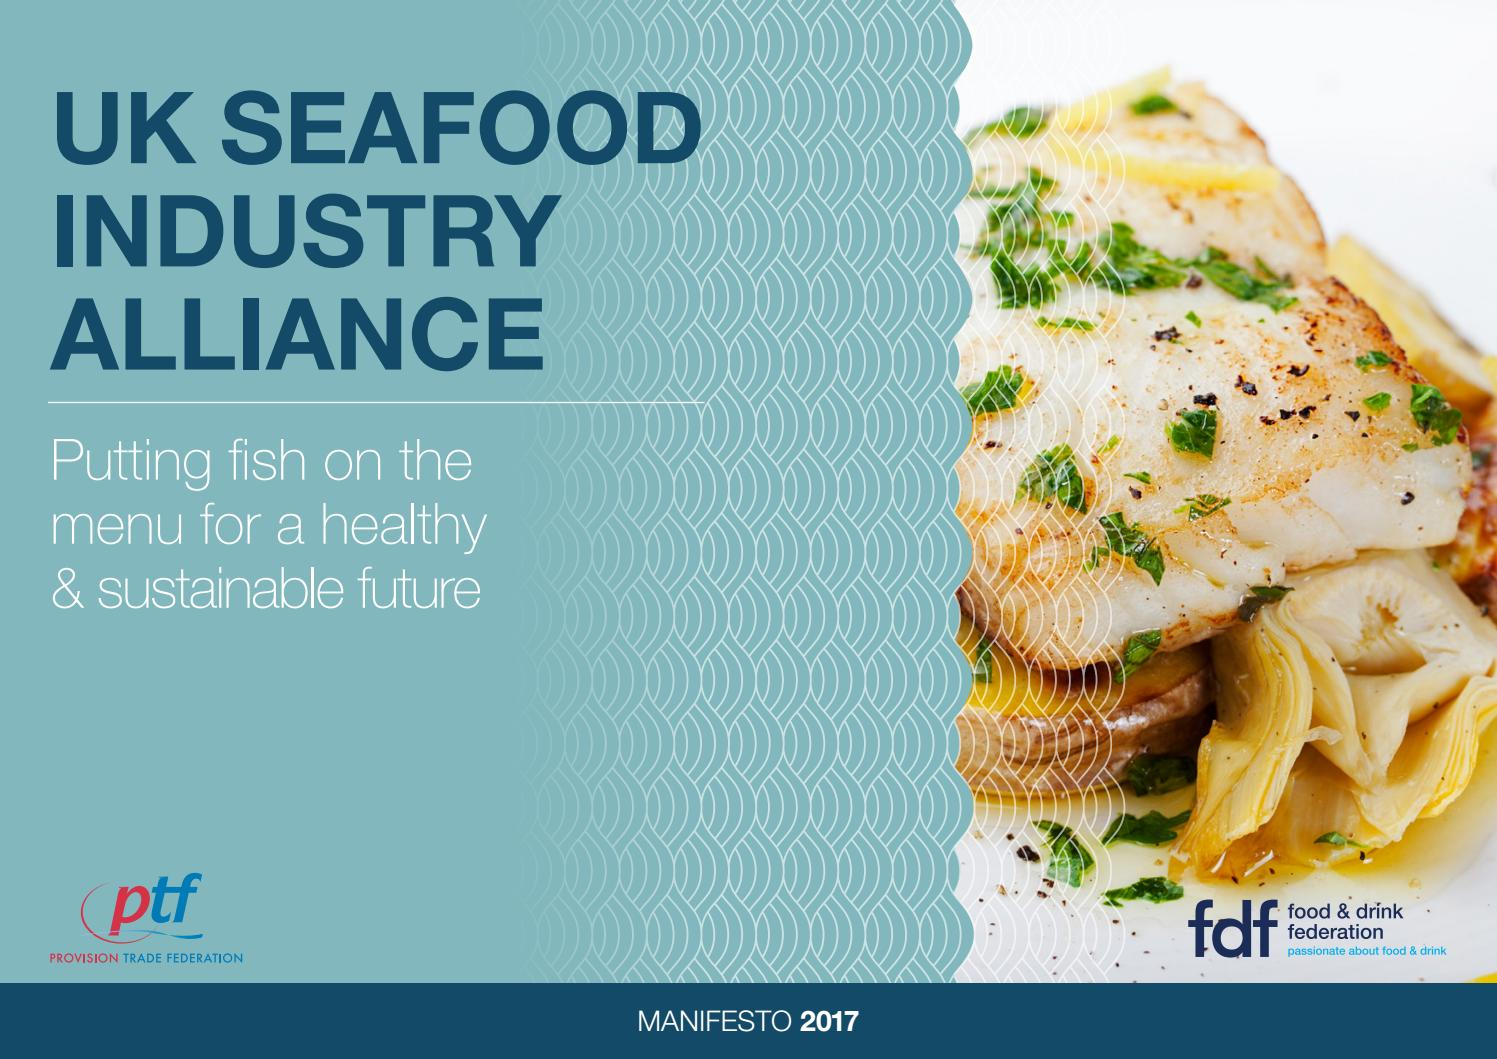 UK Seafood Industry Alliance Manifesto 2017 by Through the Gaps - issuu